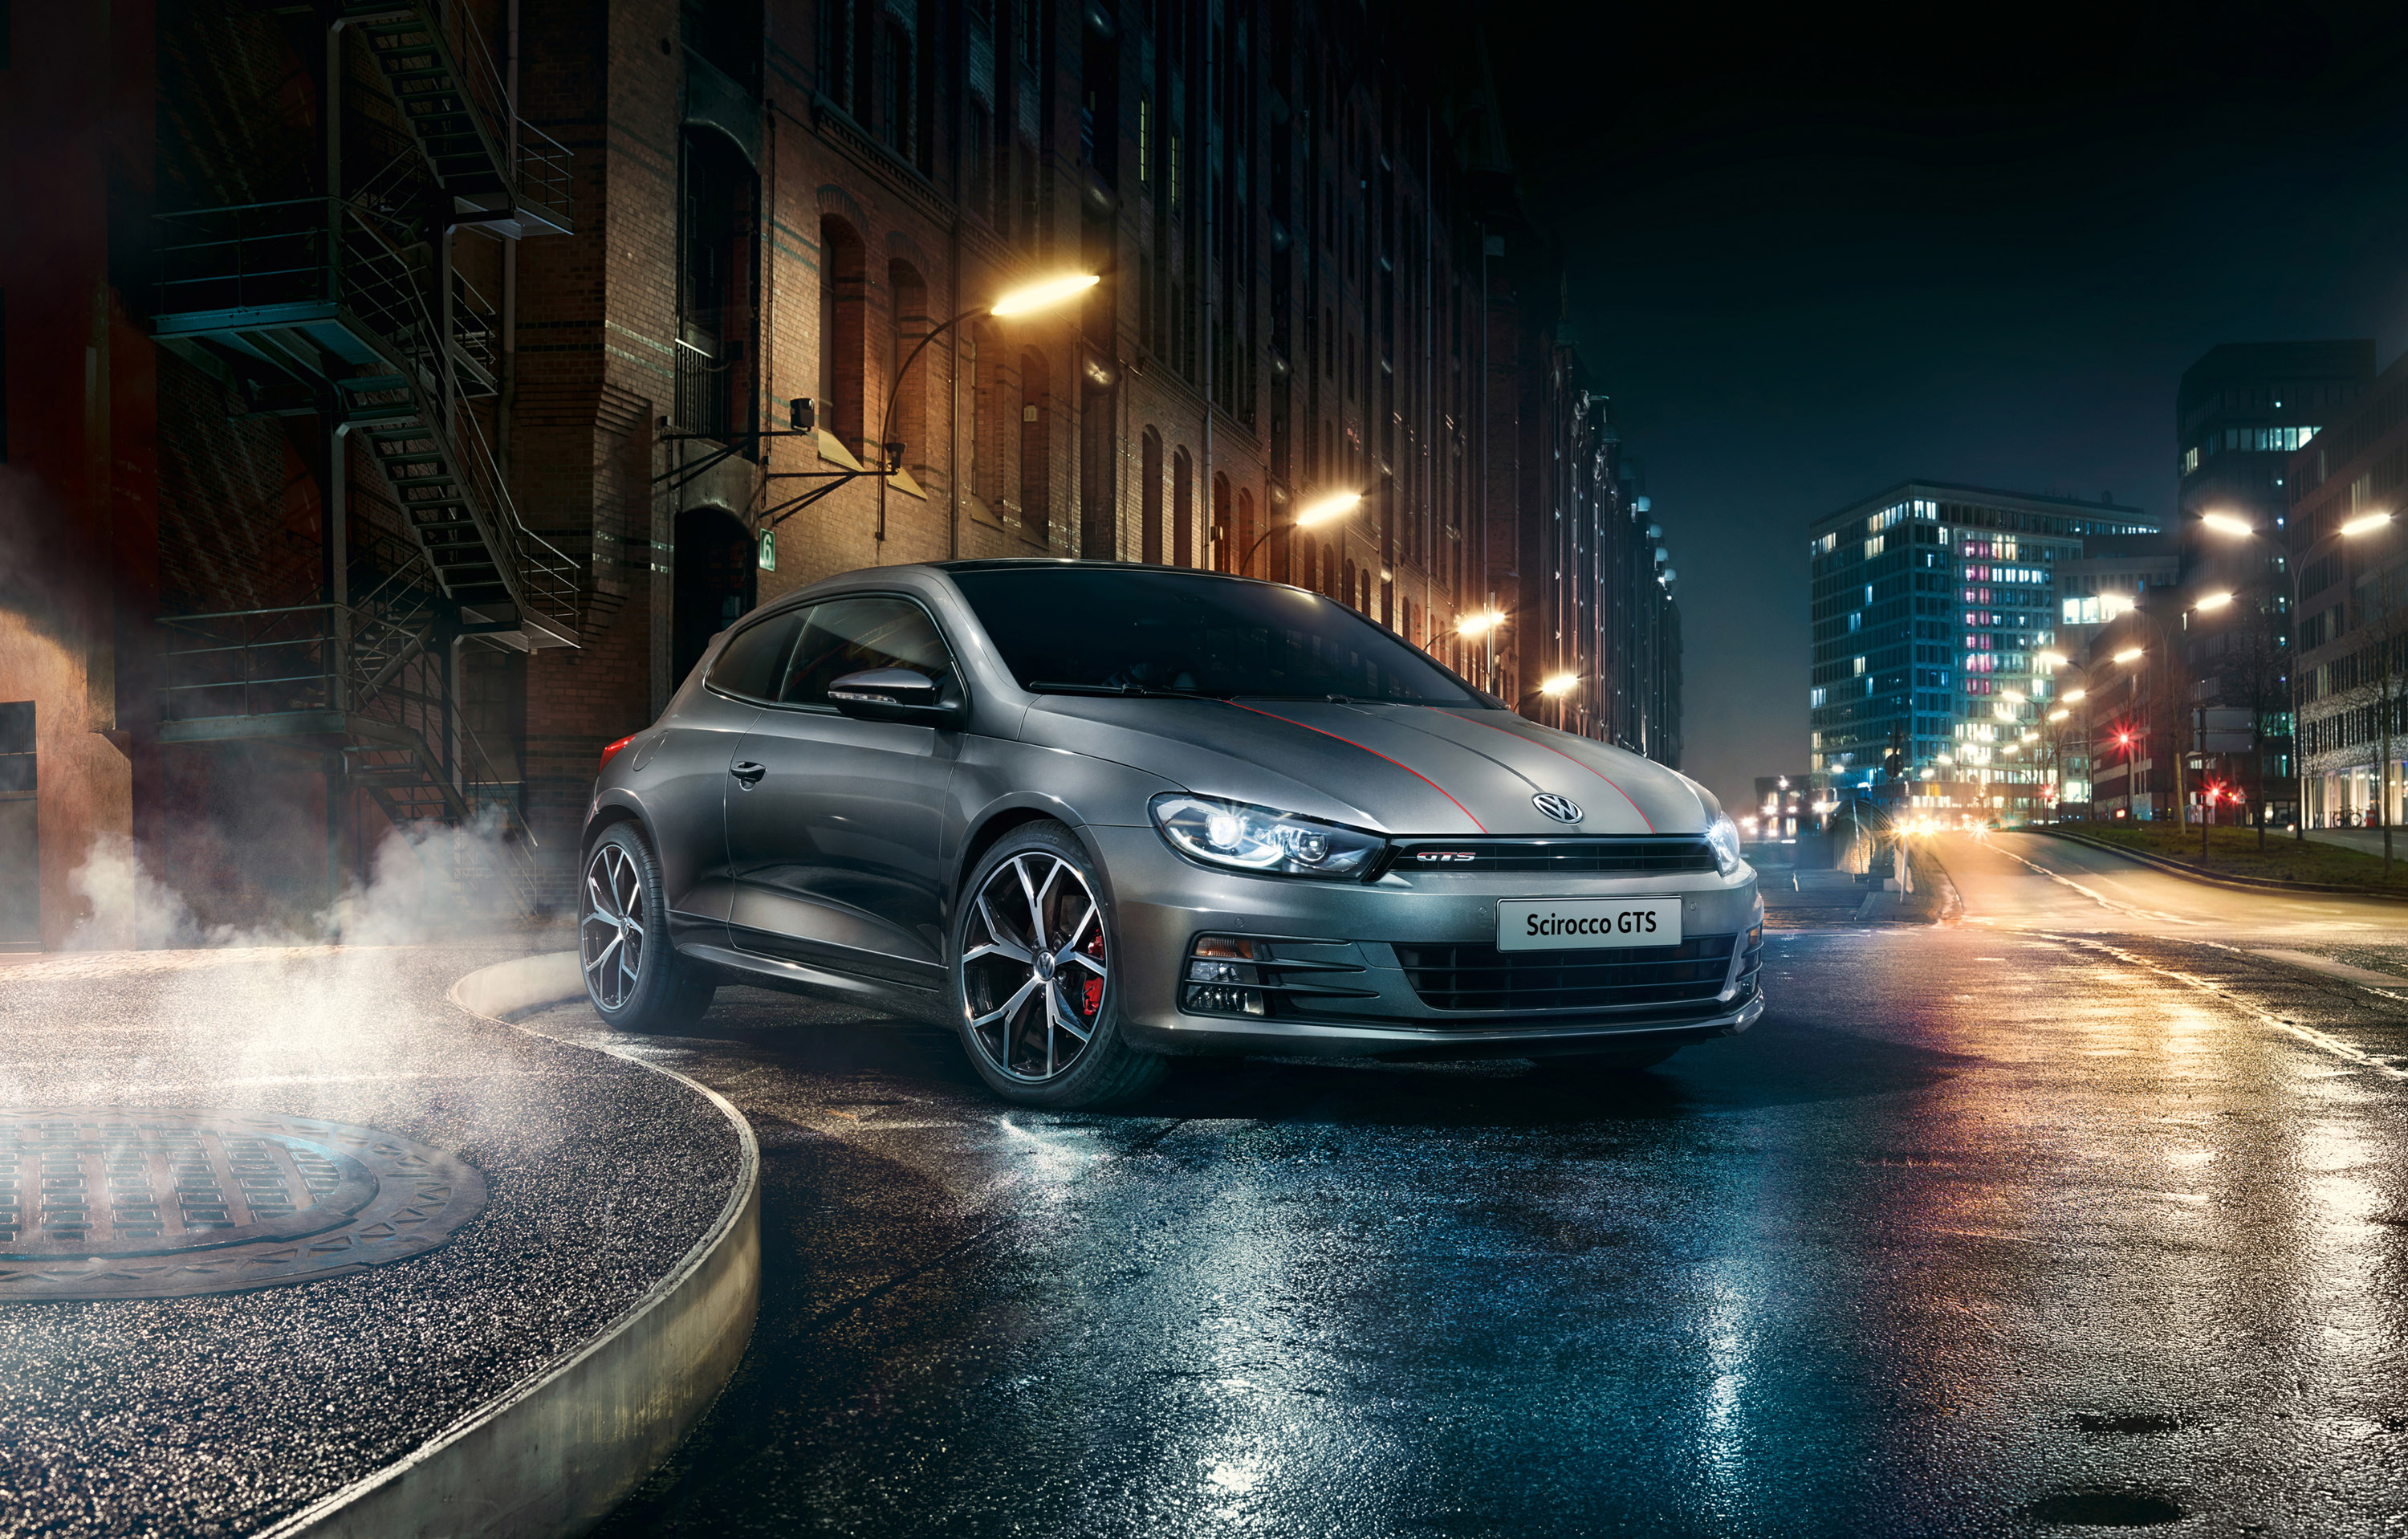 Volkswagen Releases Scirocco GTS Special Edition and Extends the Range with New Trim Levels